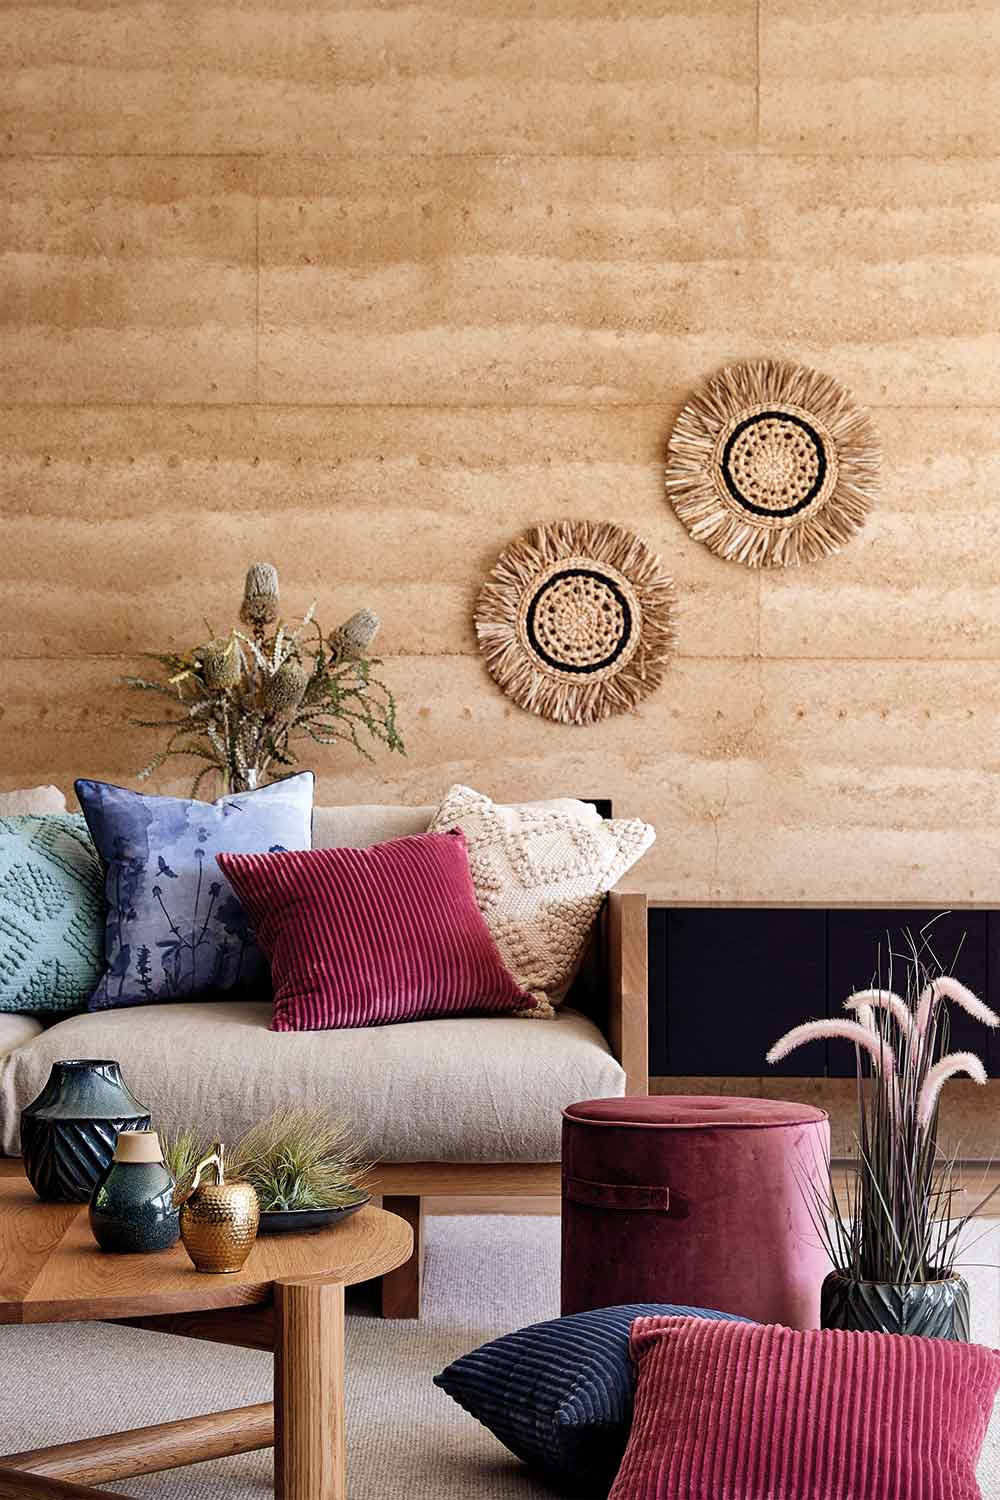 Our Top 20 Picks From The Brand Newtarget Home Decor Collection Home Beautiful Magazine Australia